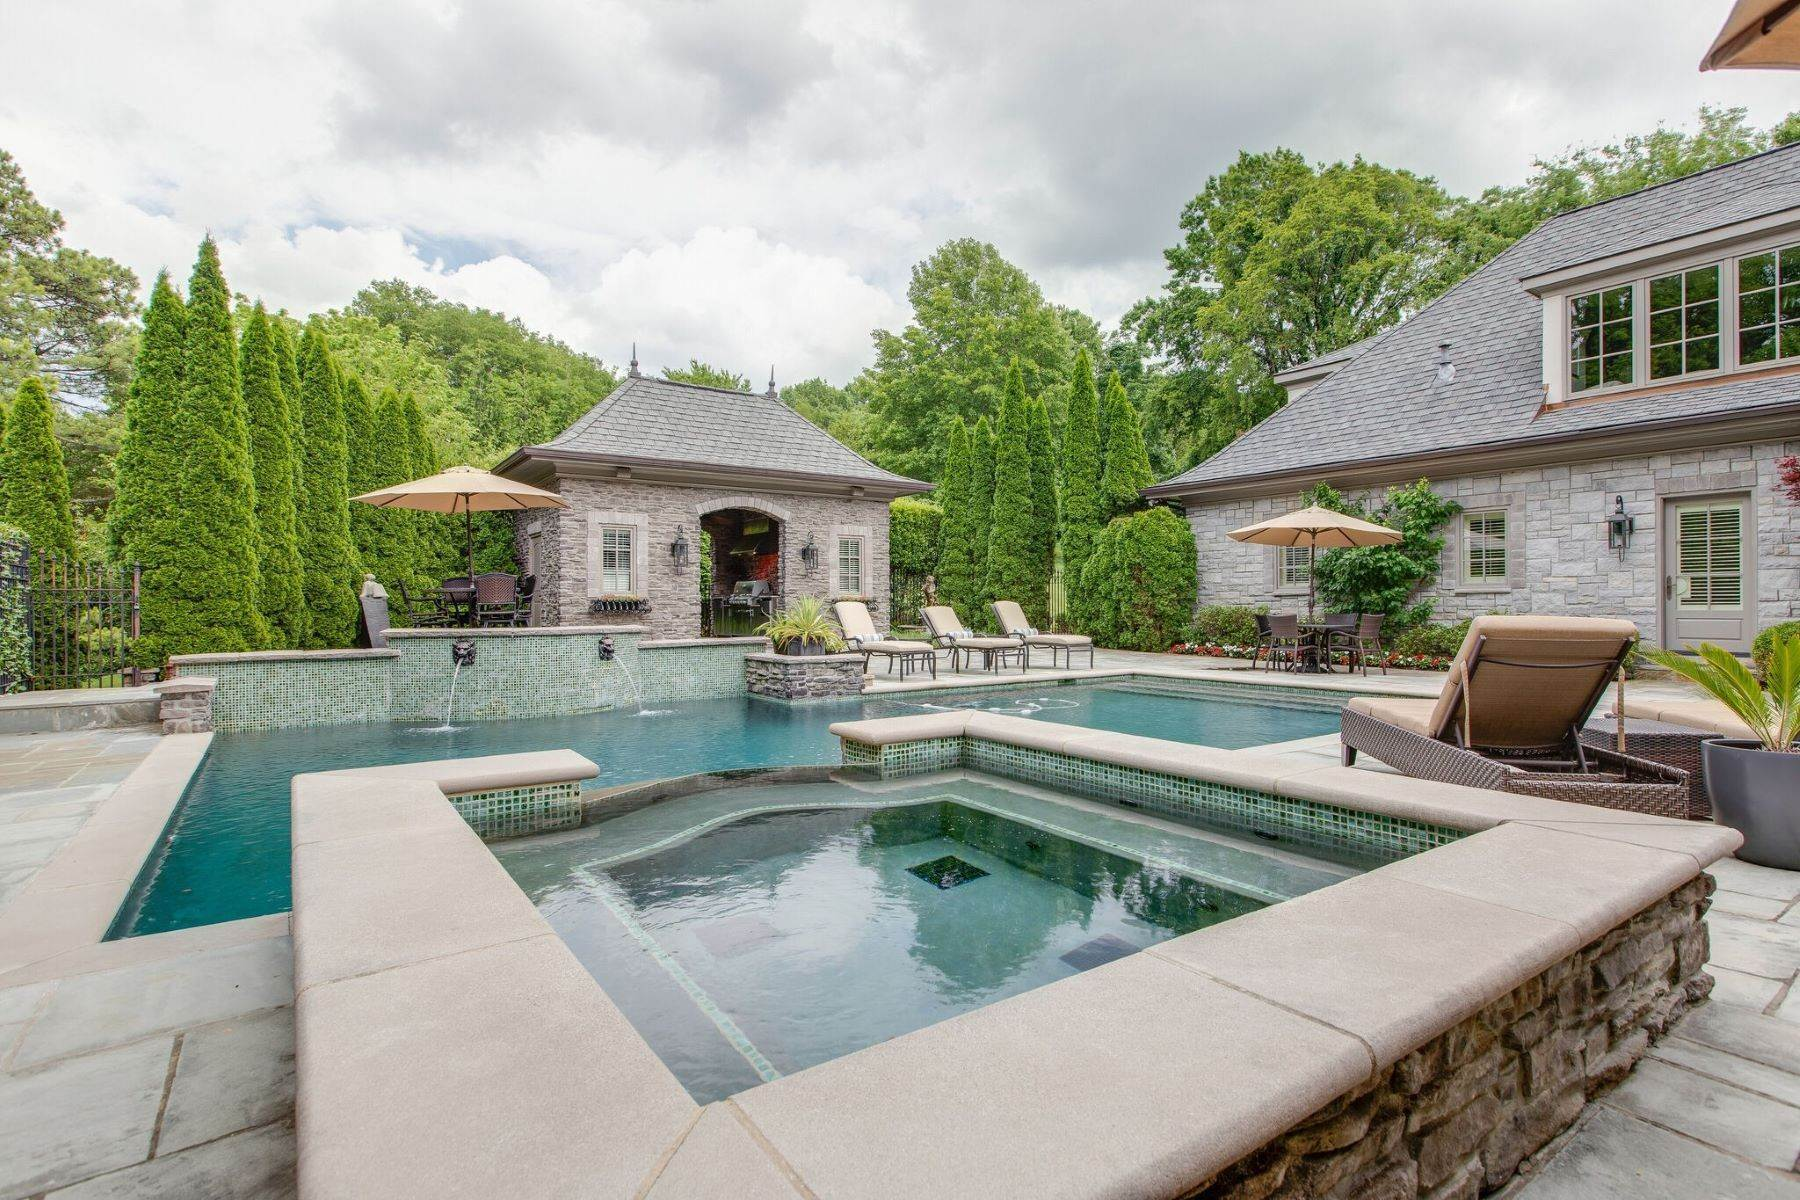 43. Single Family Homes for Sale at 4914 Lealand Ln, Nashville, Tn, 37220 4914 Lealand Ln Nashville, Tennessee 37220 United States